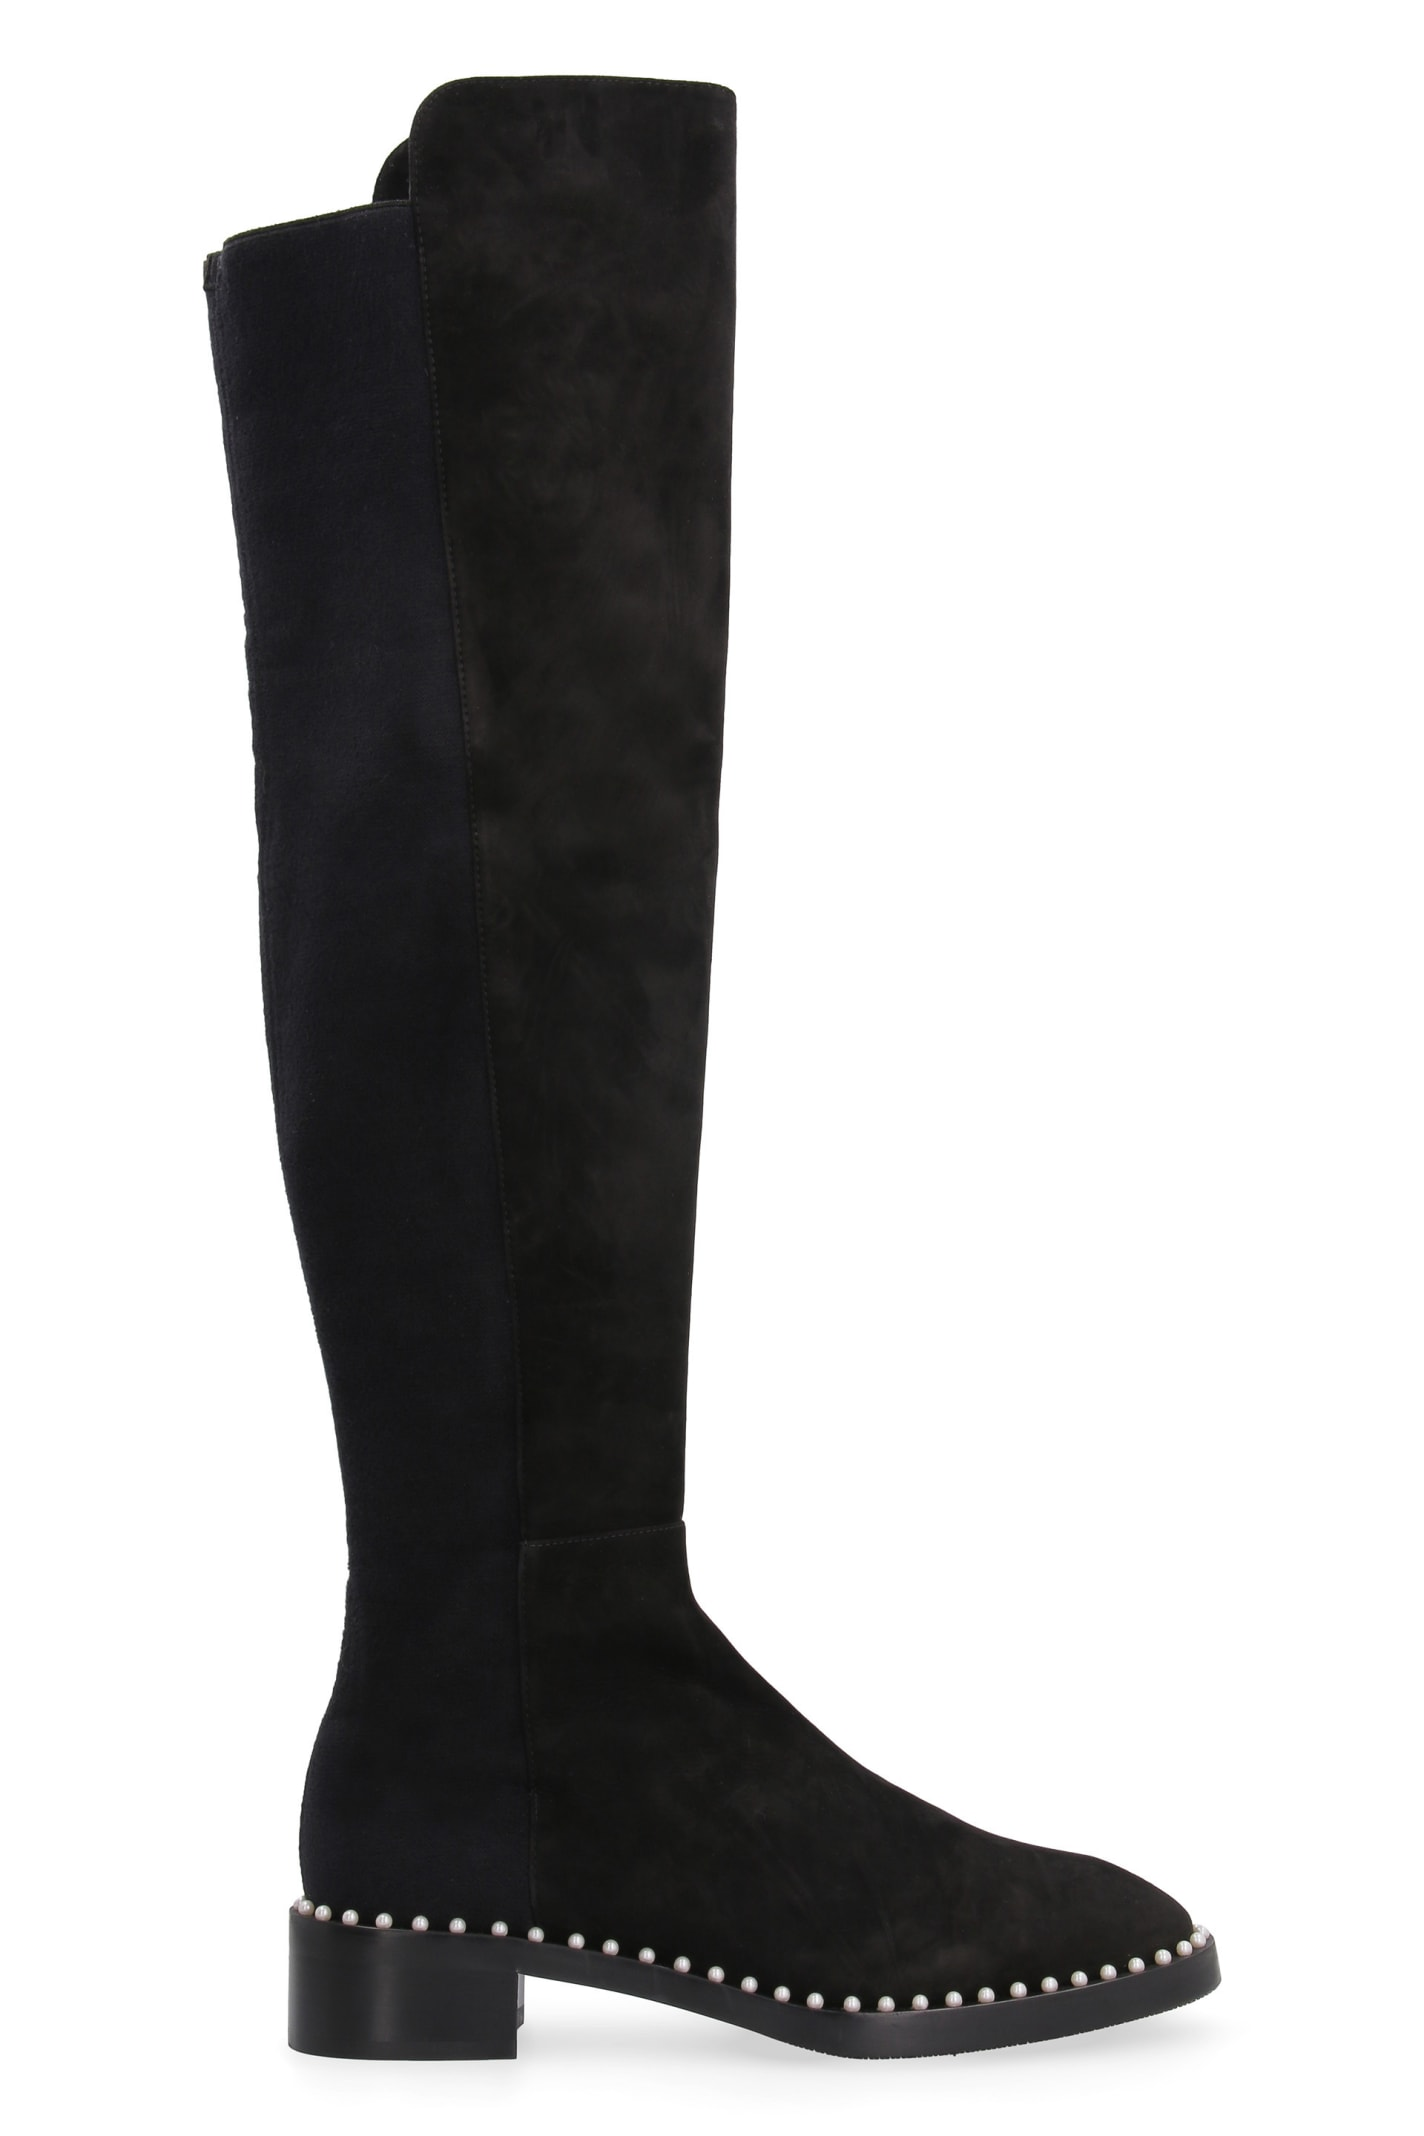 Buy Stuart Weitzman 5050 Suede Over The Knee Boots online, shop Stuart Weitzman shoes with free shipping